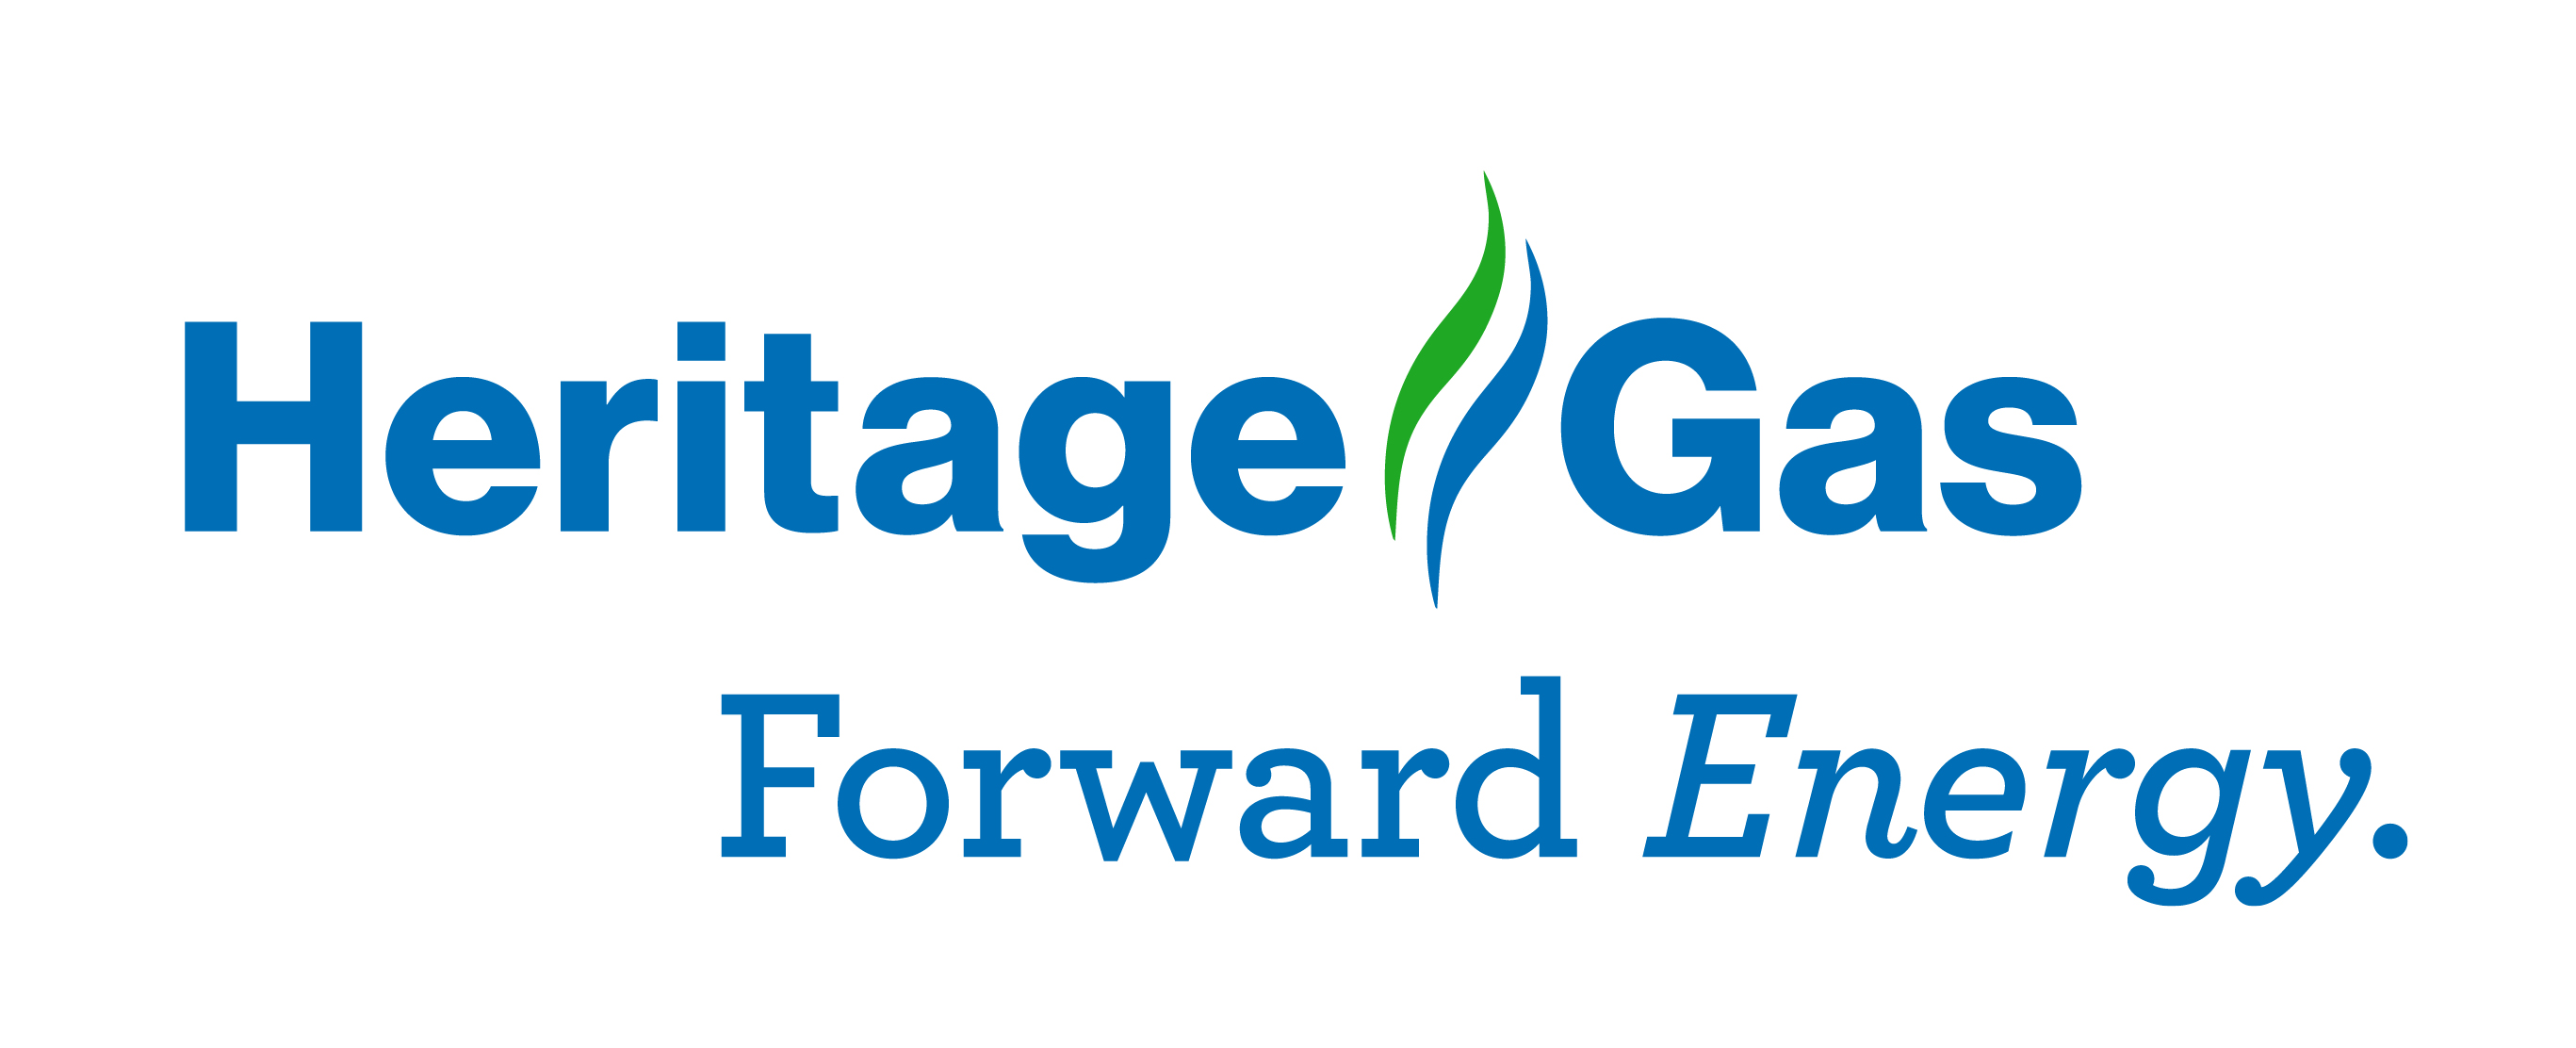 A logo image of Heritage Gas